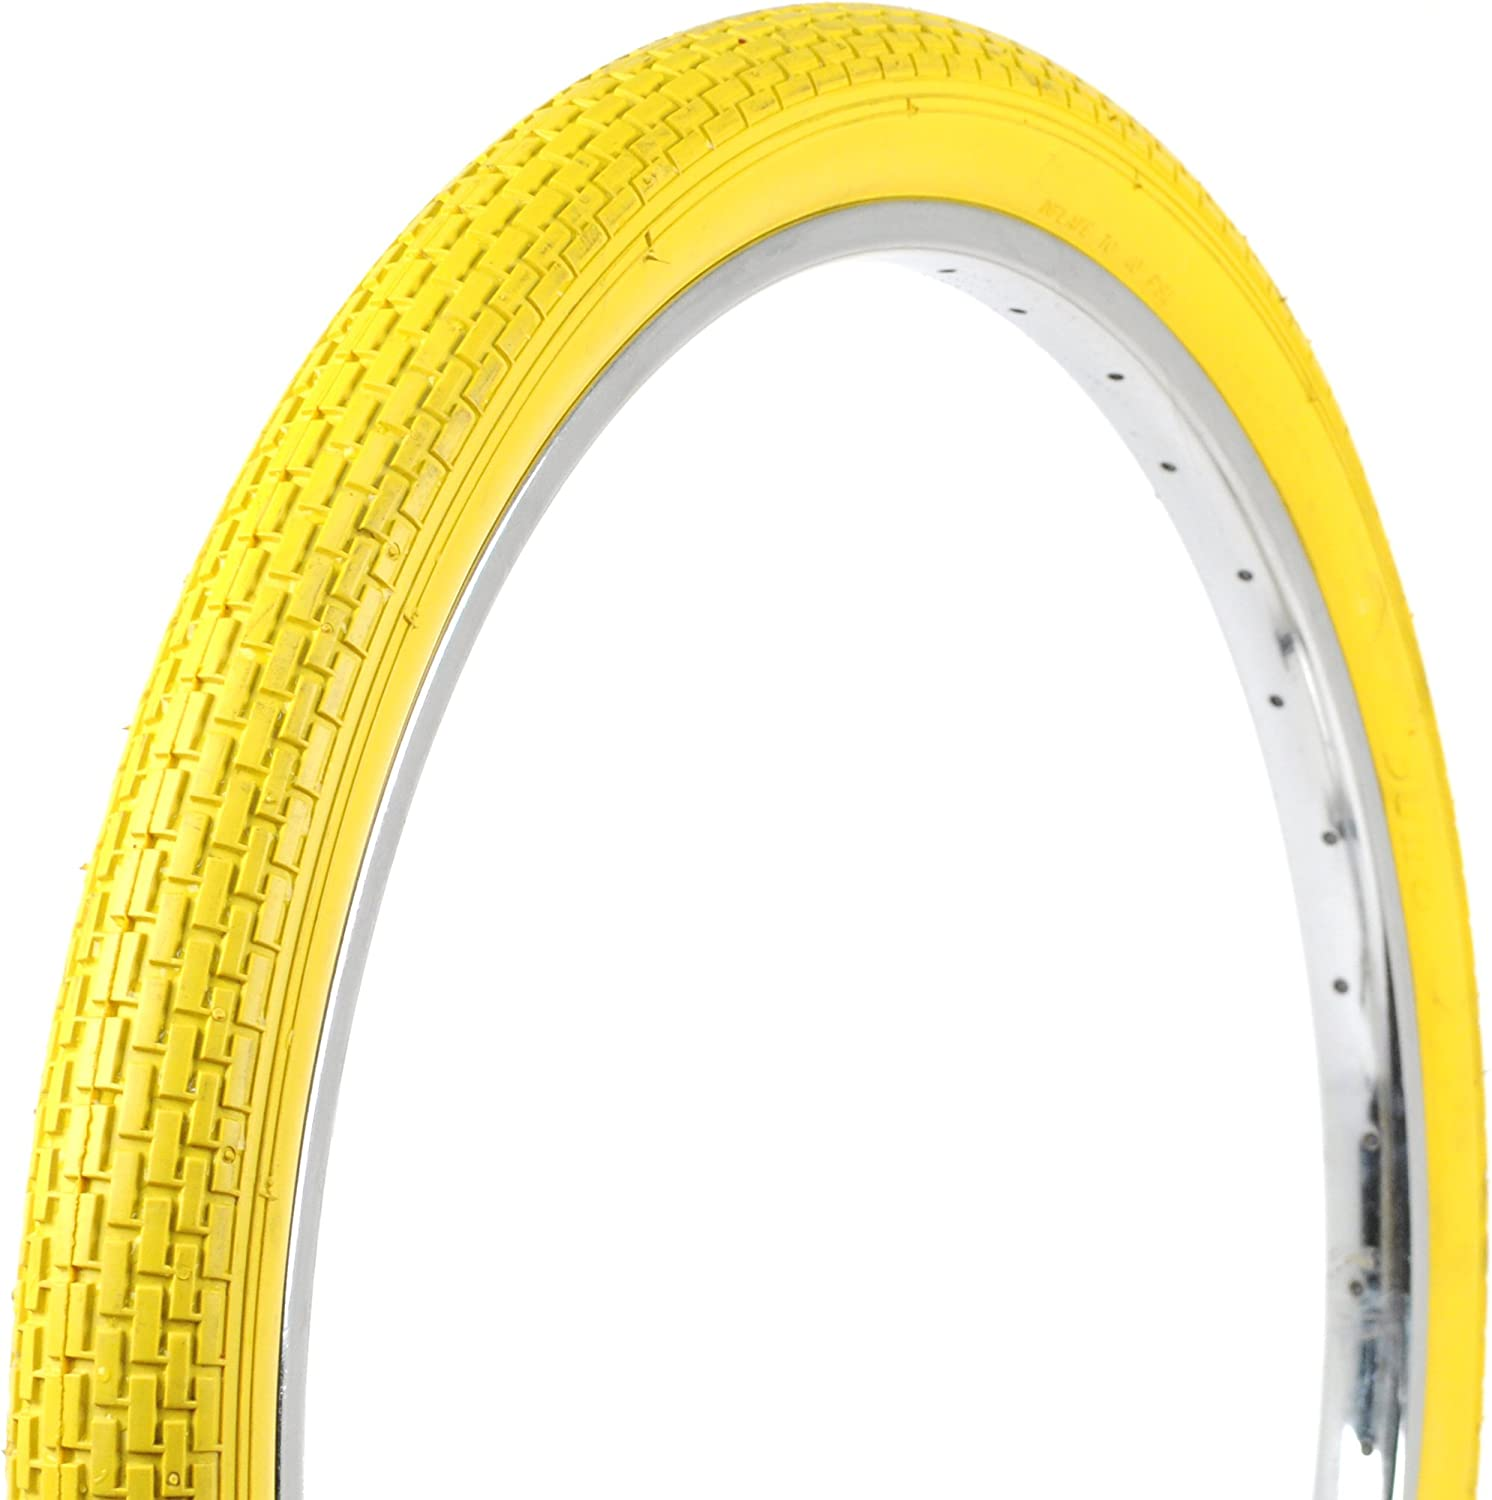 2 DURO 26X2.125 BEACH CRUISER BICYCLE TIRES DIAMOND  PATTERN,CLAY COLOR TWO